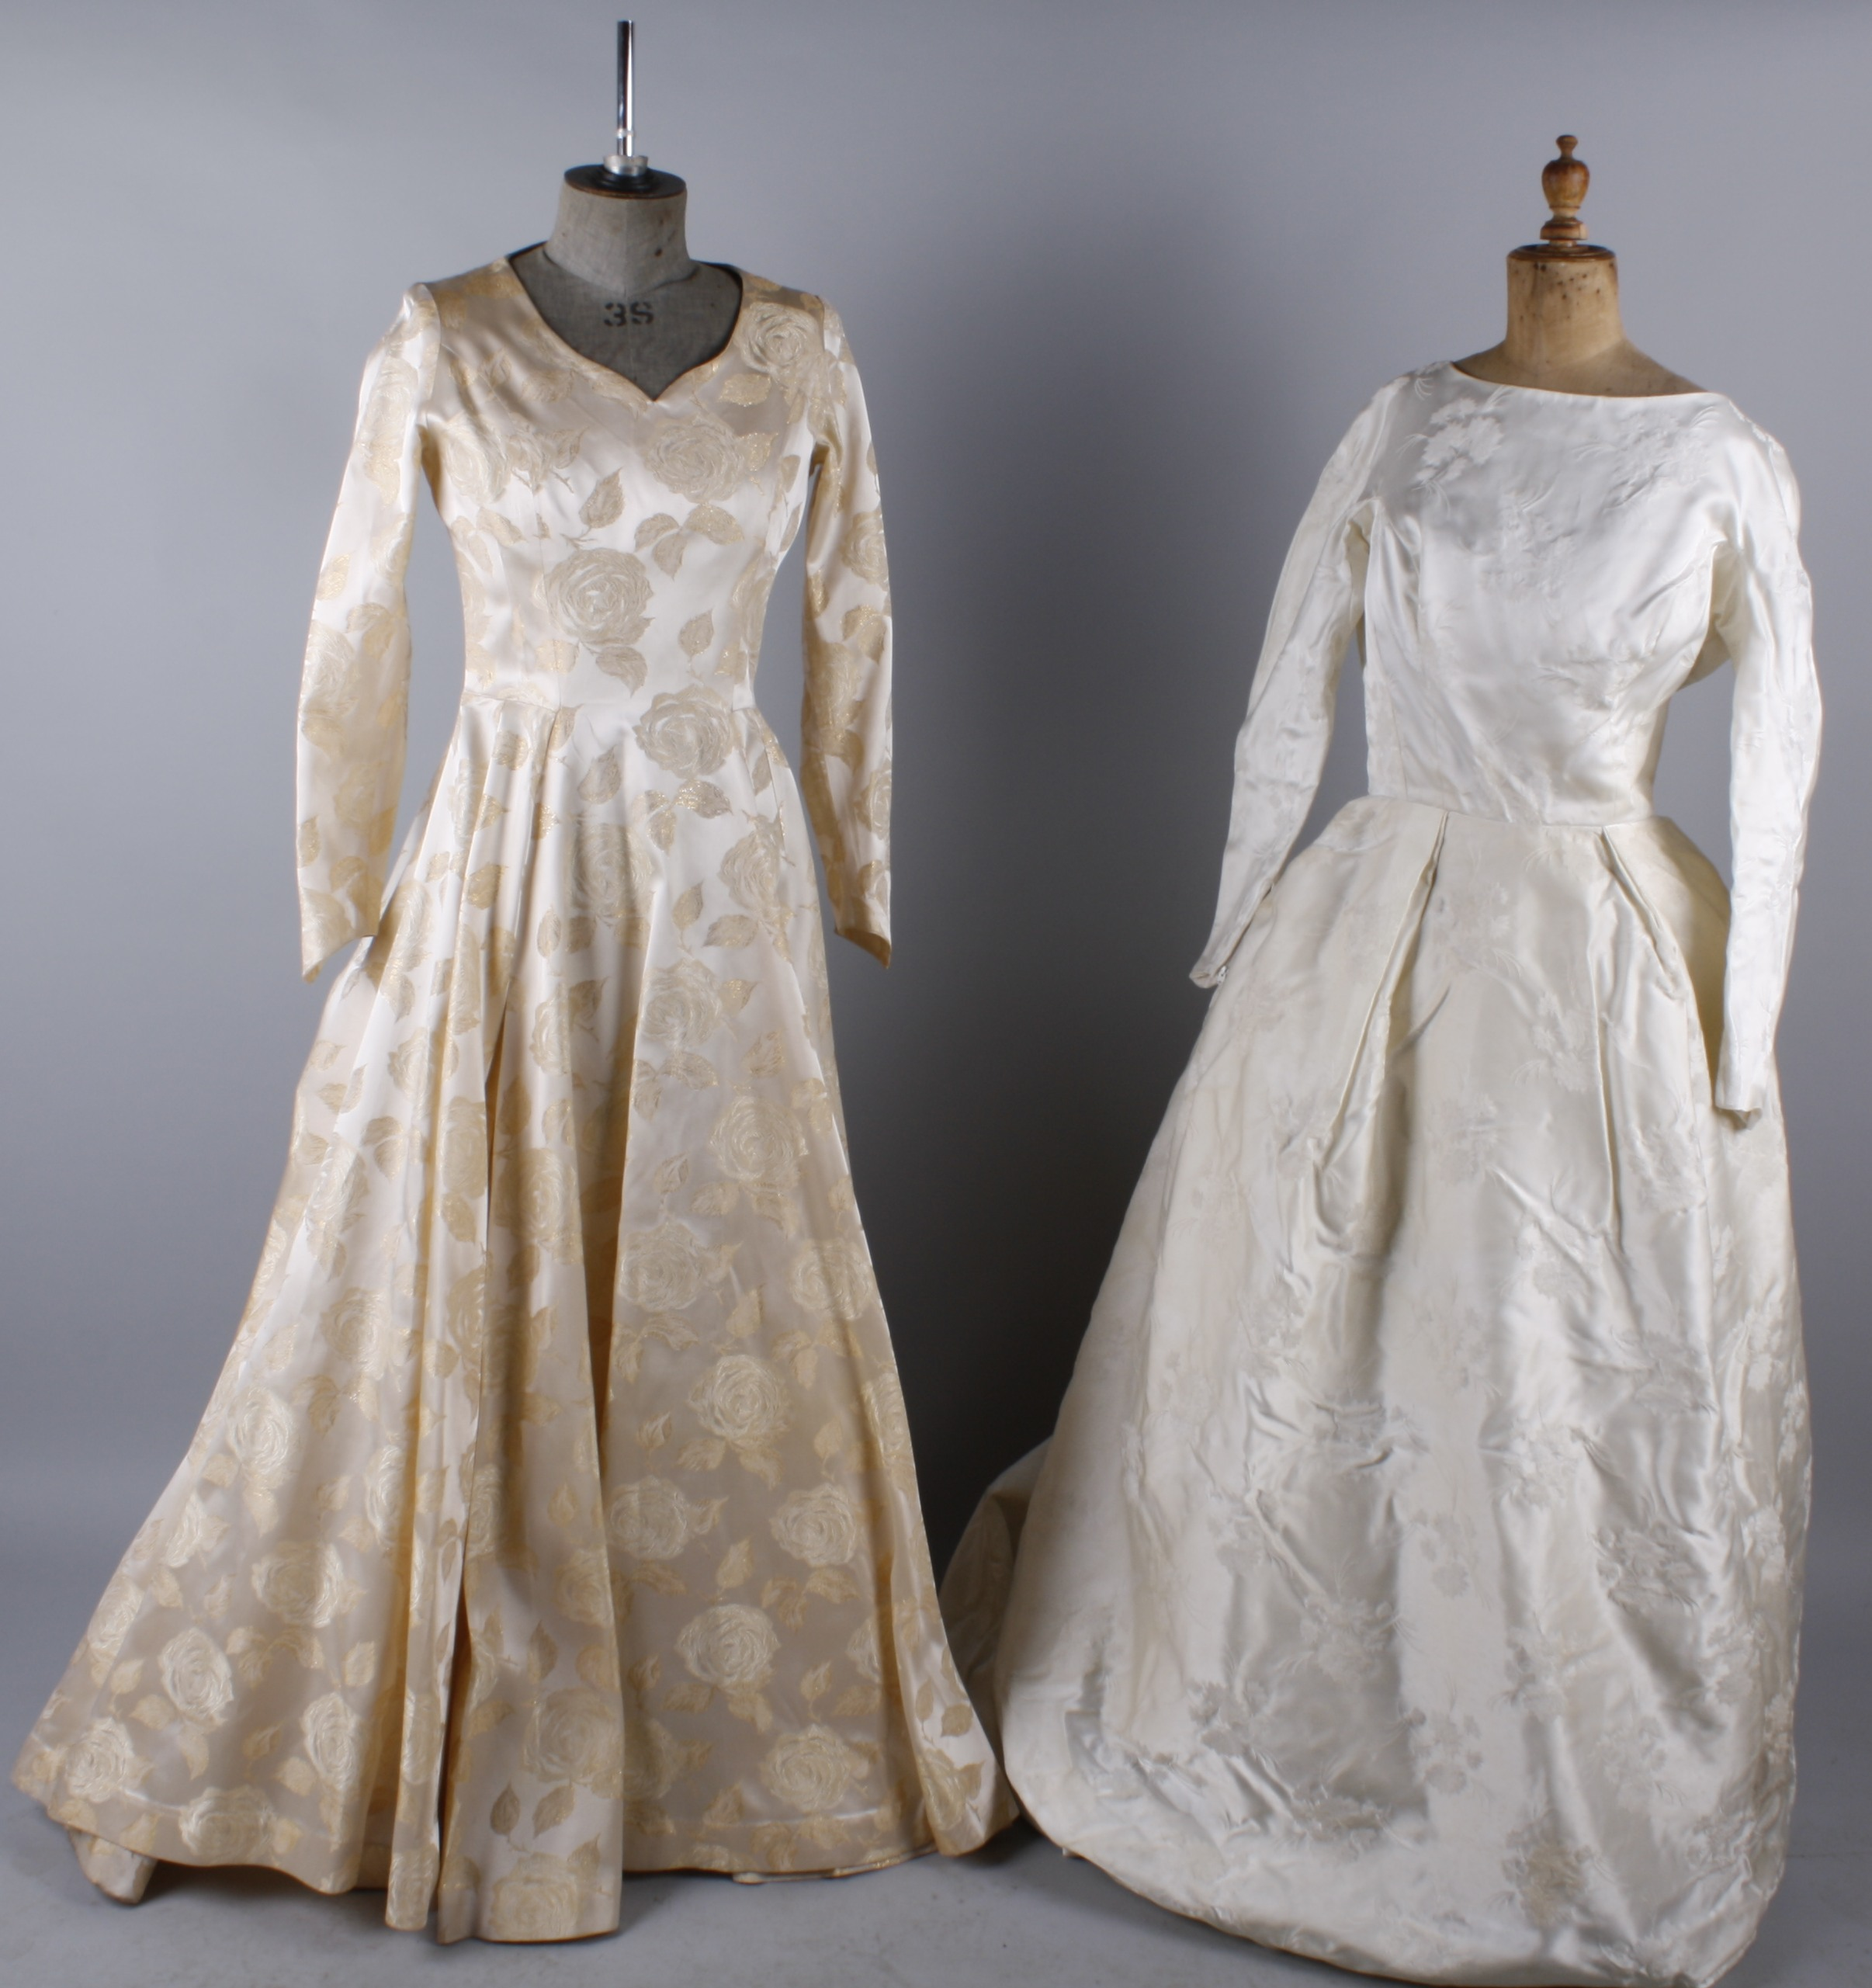 Lot 31 Six Vintage Wedding Dresses Comprising A Cream Brocade Late 1950s